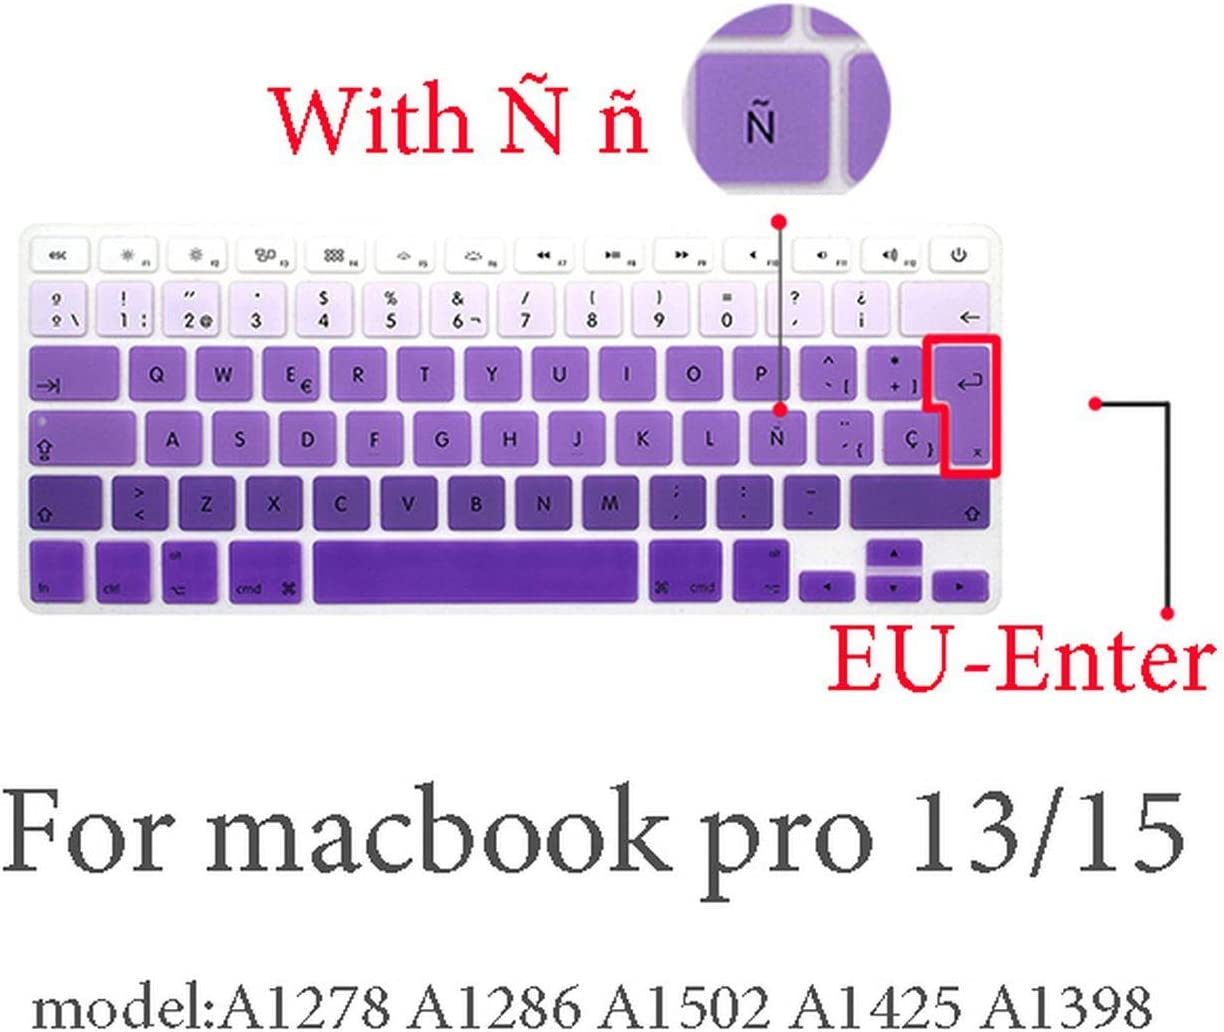 2020 Spanish Keyboard Protective Film for Mac Book Pro 13 A2159 Pro13 Air A1466 A1708A1989A1932 EU Key Silicone Keyboard Cover-Pro13 15 2009-2015 1